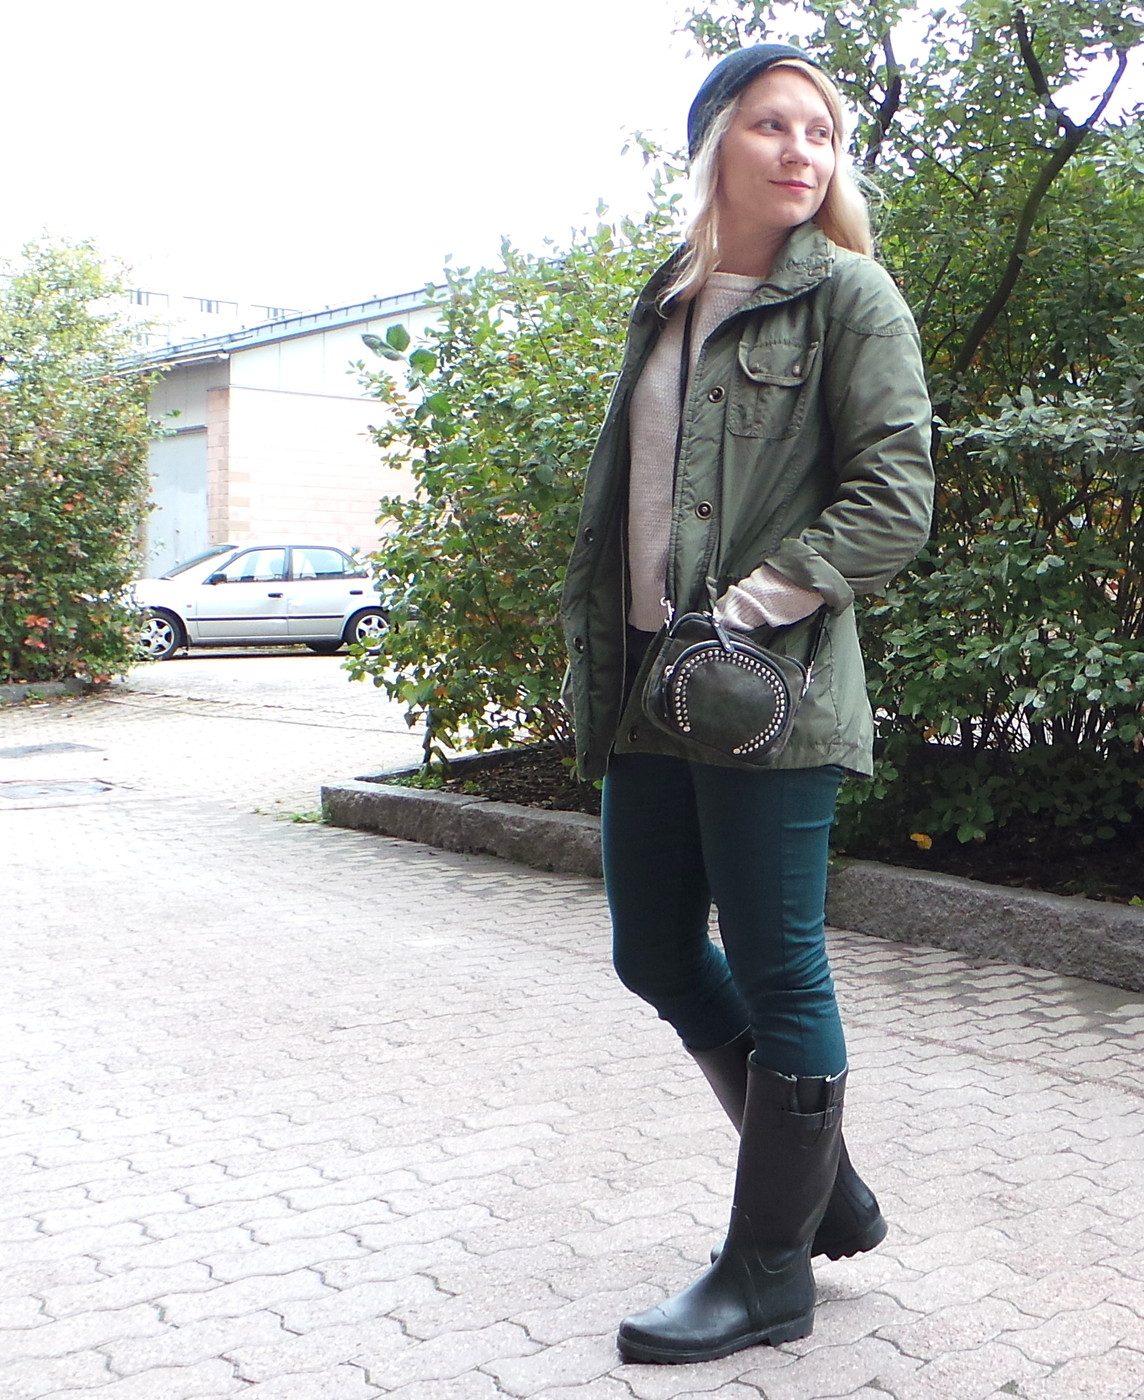 23/09/2013: Rain boots and so on